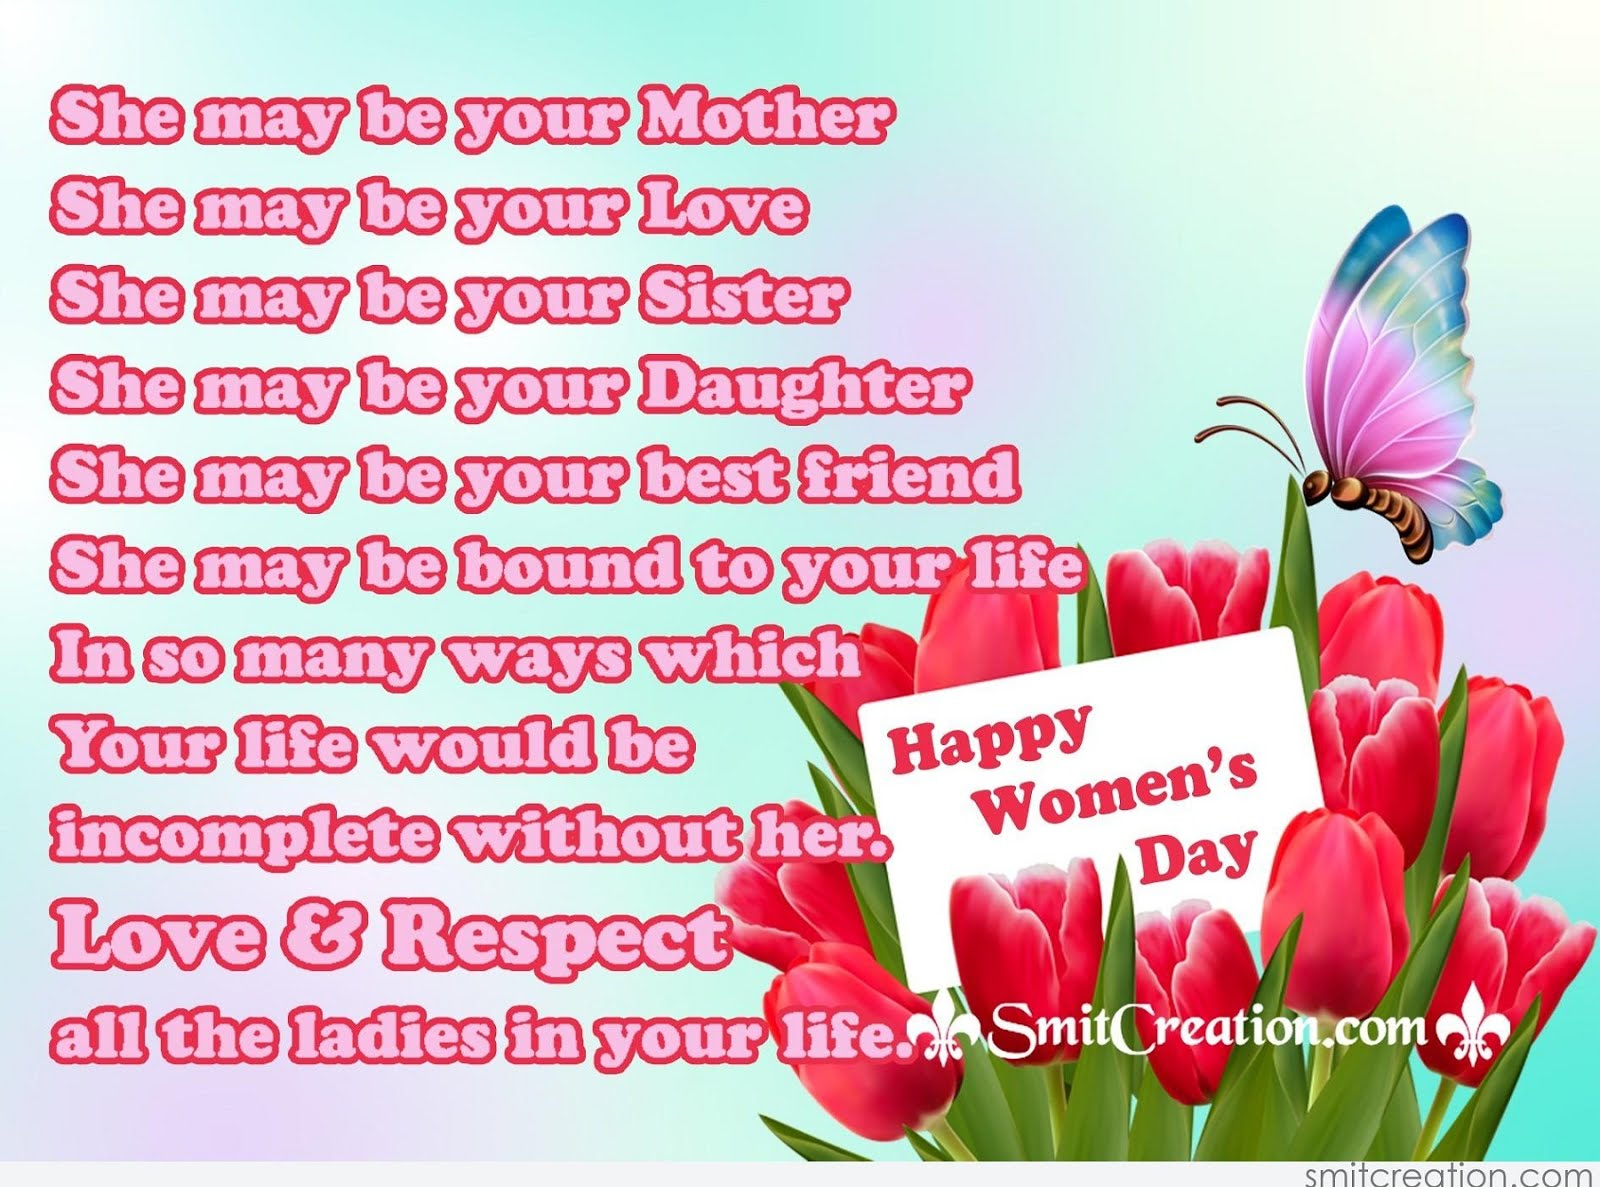 Message Quotes: Happy Women's Day Quotes, SMS Messages & Saying Images